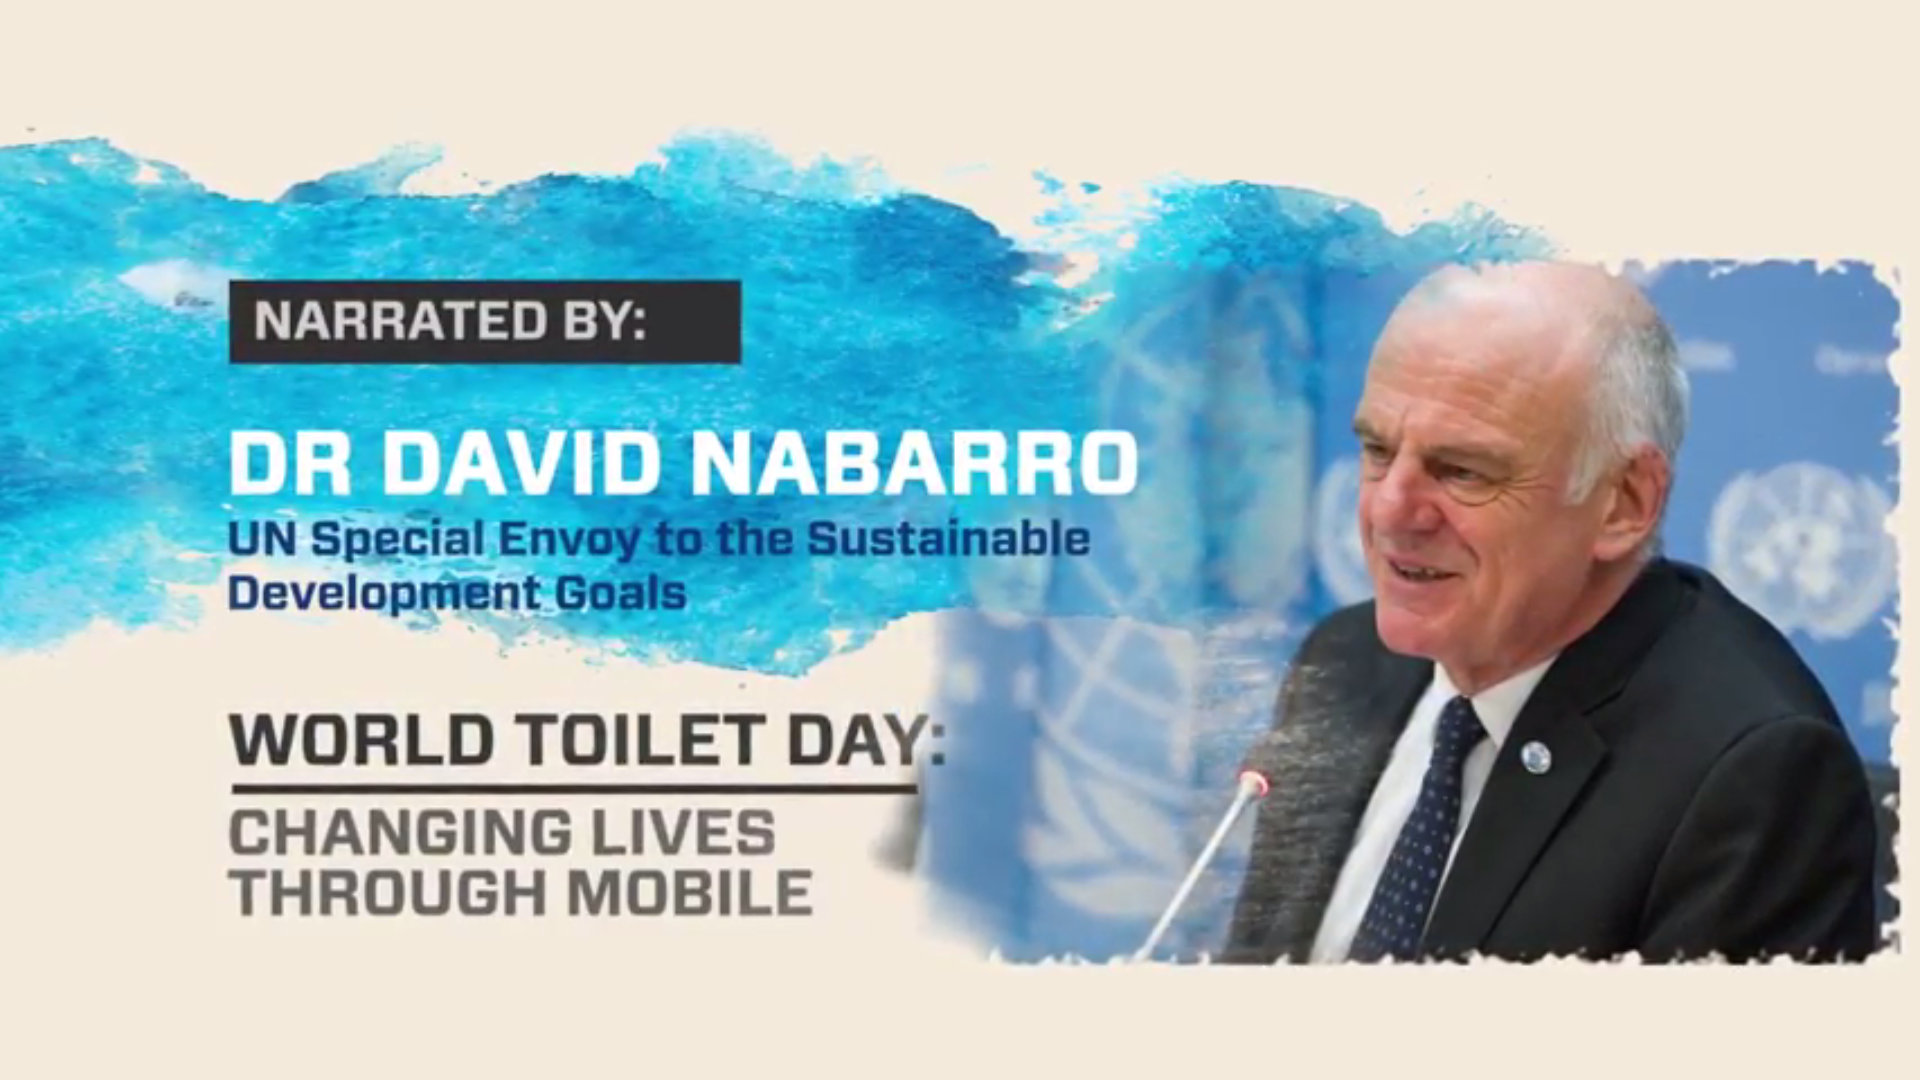 World Toilet Day: Changing Lives Through Mobile